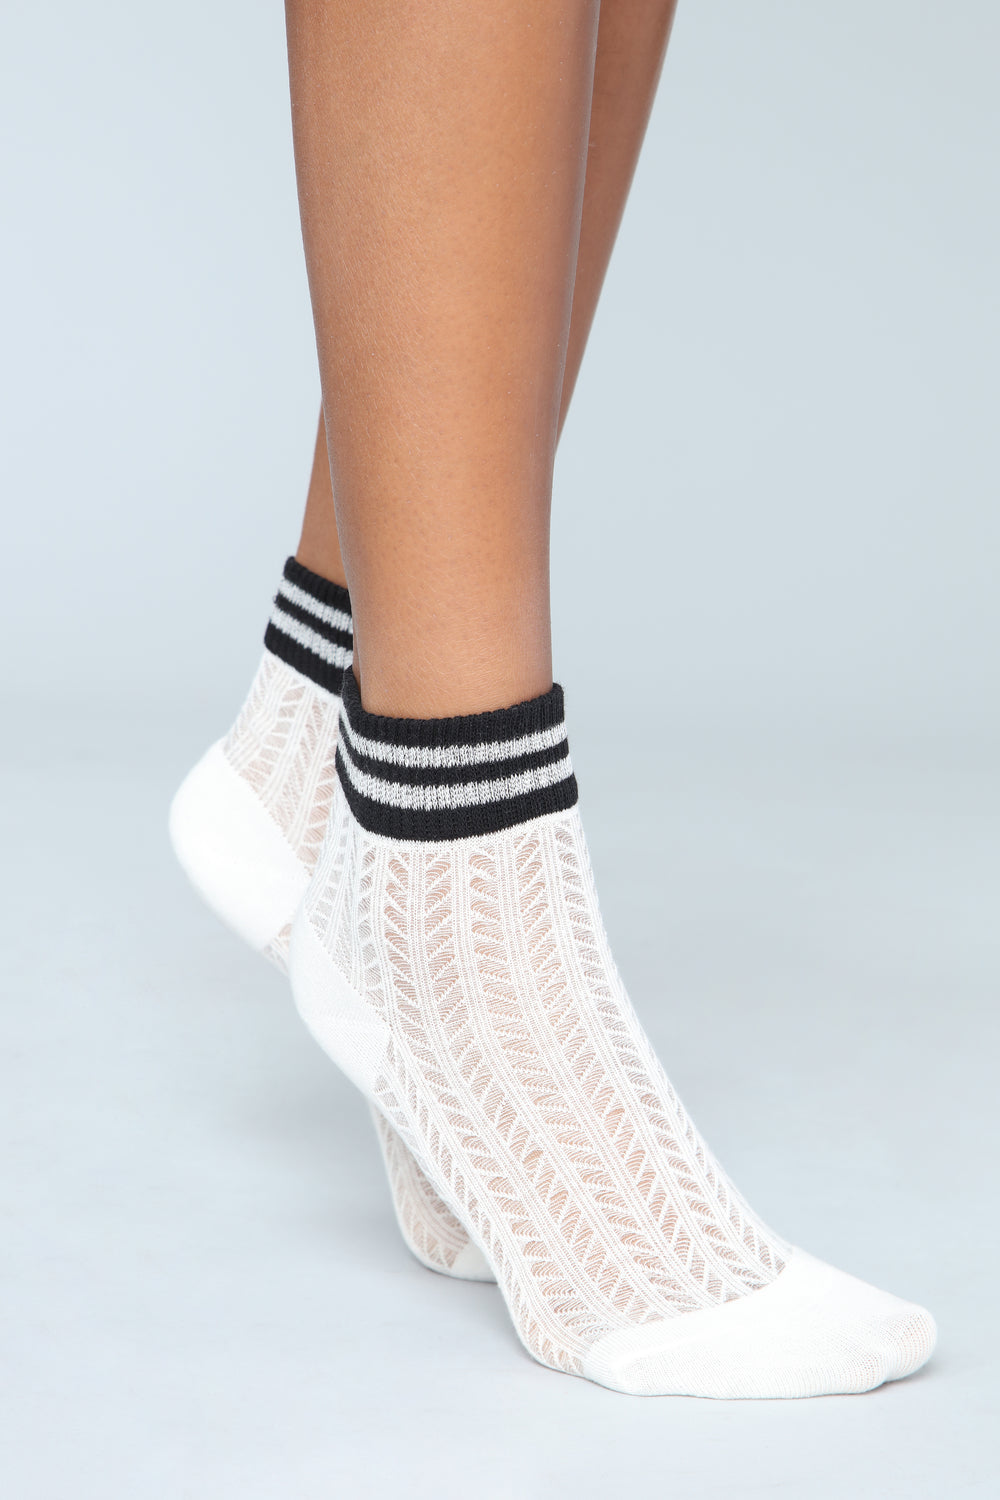 Only With My Crew Socks - White